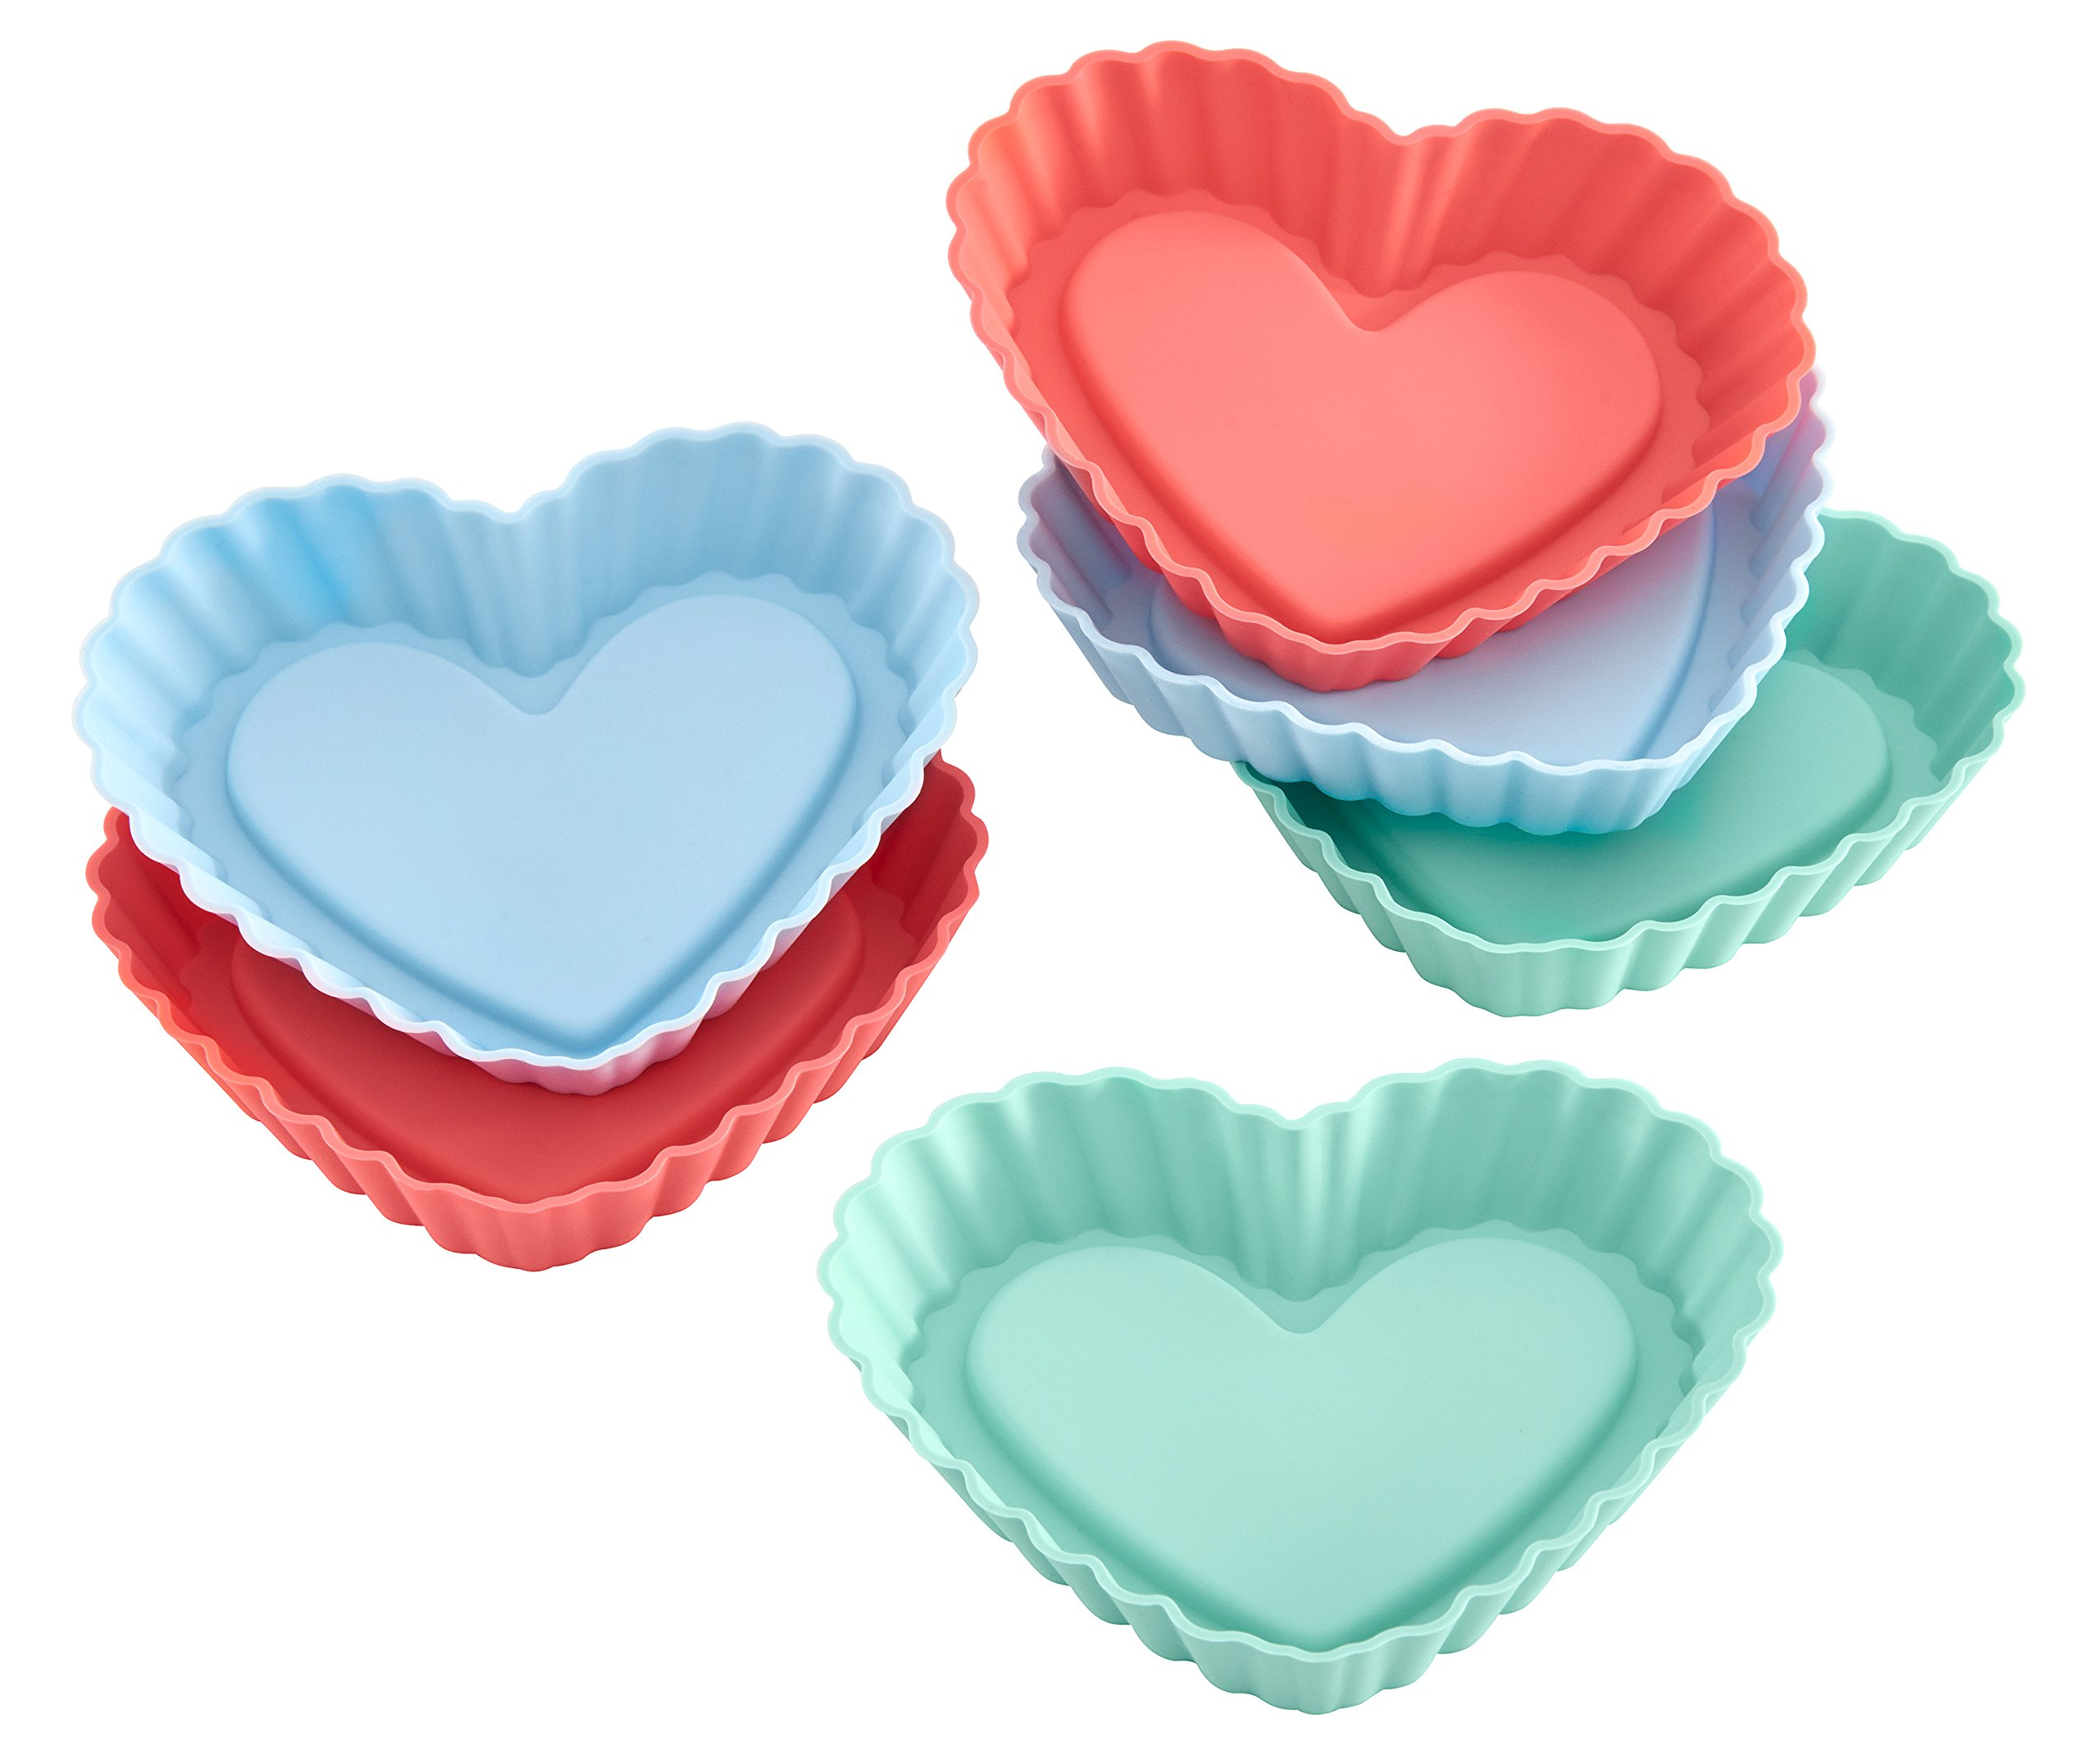 Lurch Germany Flexiform Silicone Heart Shaped Tartlet Molds Set of 6, Pink/Green/Blue